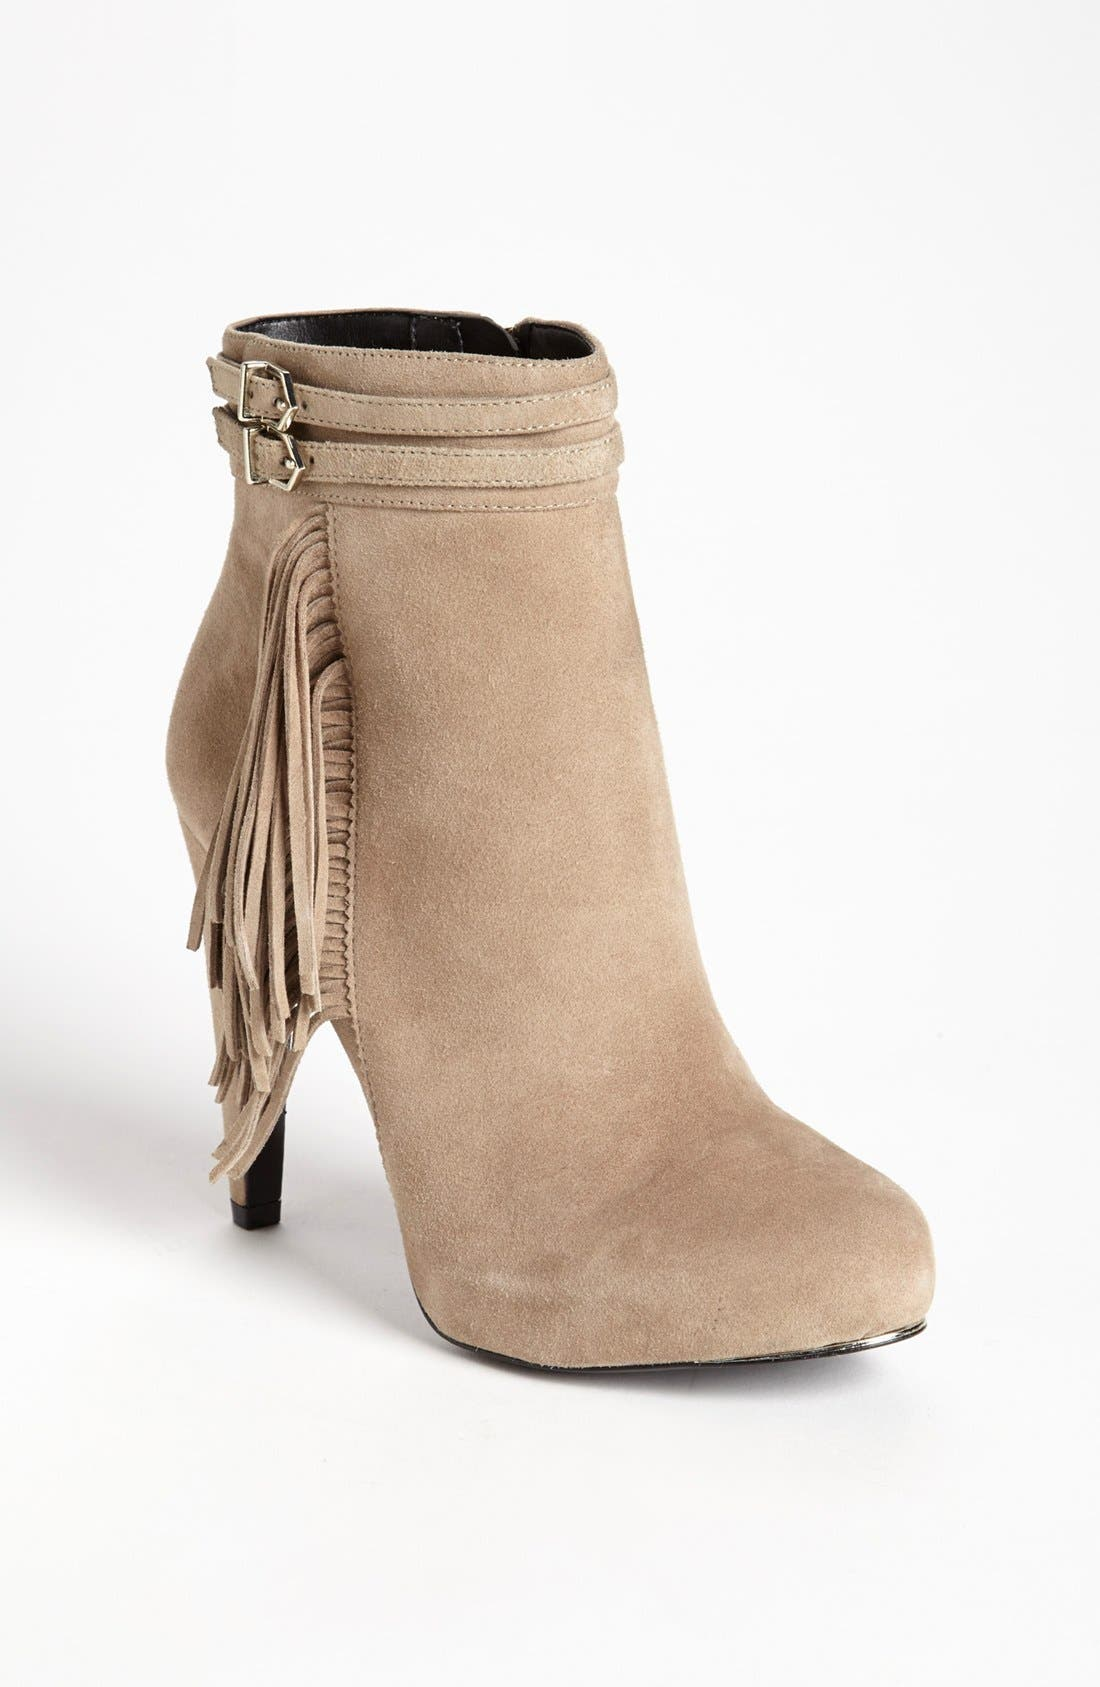 Alternate Image 1 Selected - Sam Edelman 'Keegan' Bootie